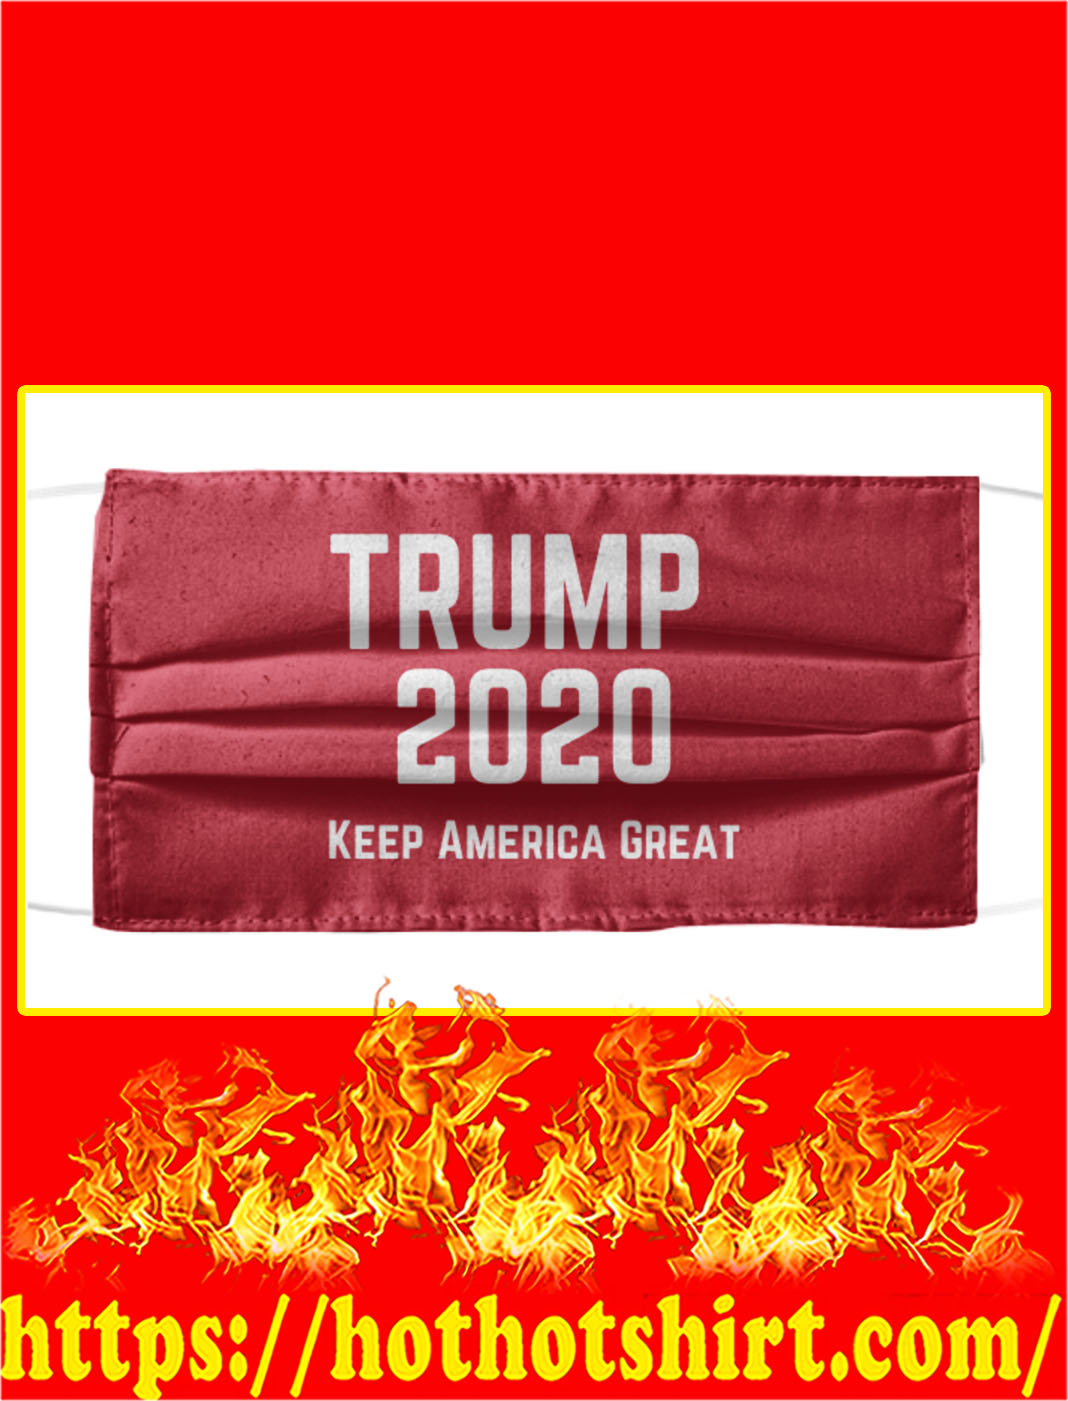 Trump 2020 keep america great face mask - pic 1